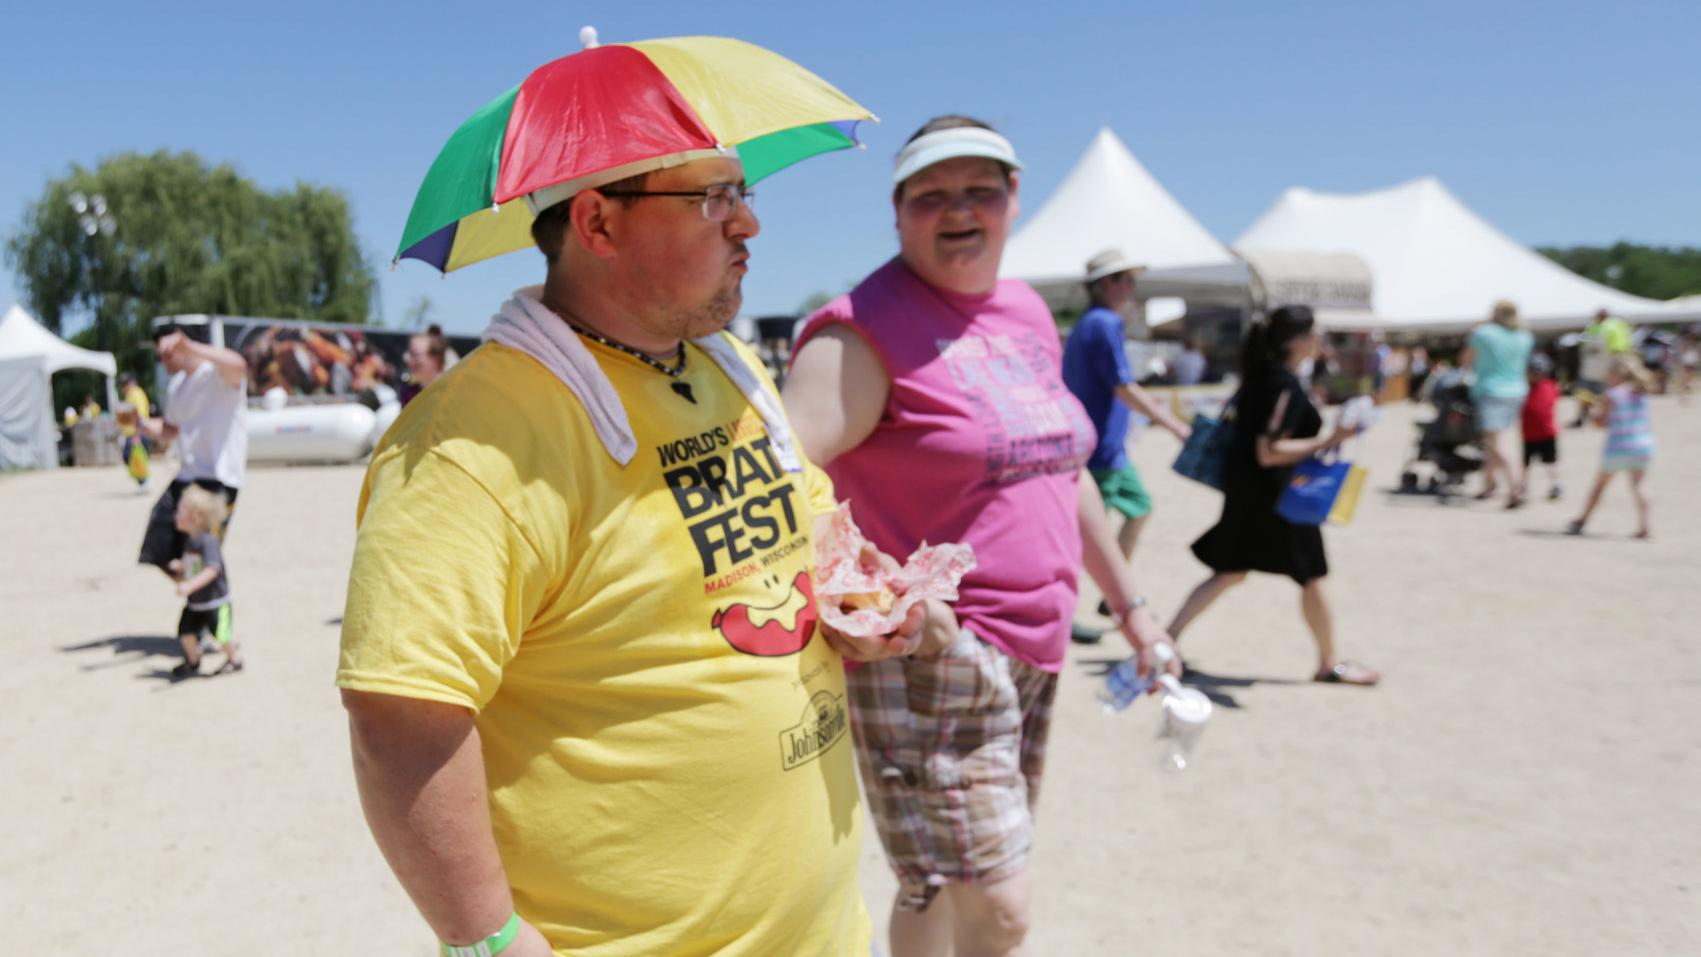 Staying cool is critical during hottest weather in 7 years in Wisconsin